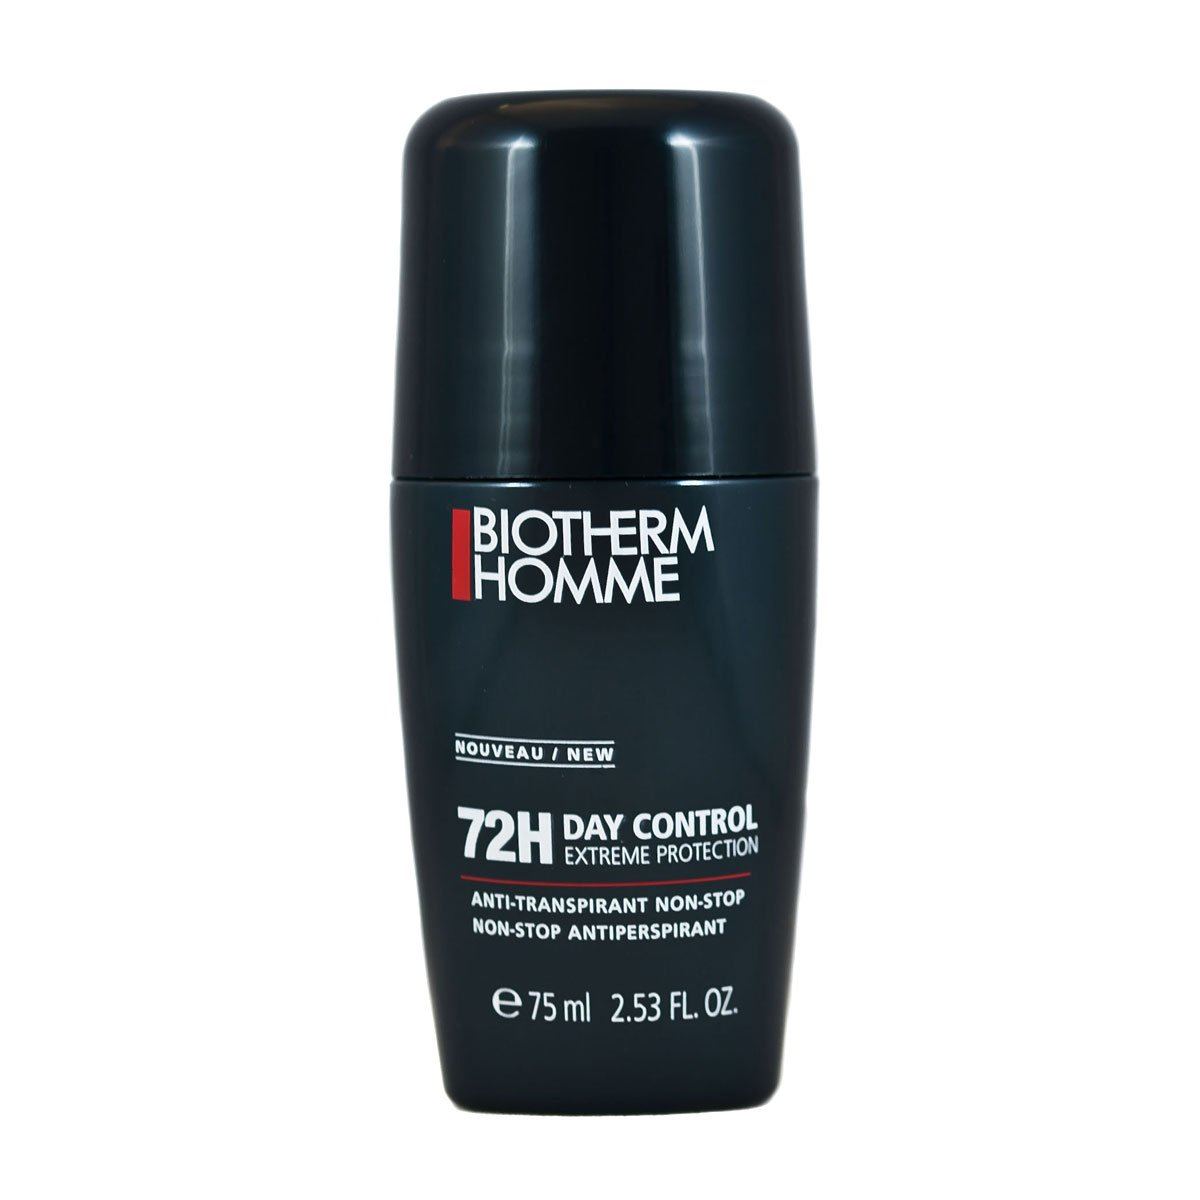 Biotherm Homme Day Control Deodorant Anti-Perspirant Roll-On 72 Hour Extreme Performance for Men, 2.53 Ounce 3605540783023 L3334300_-75